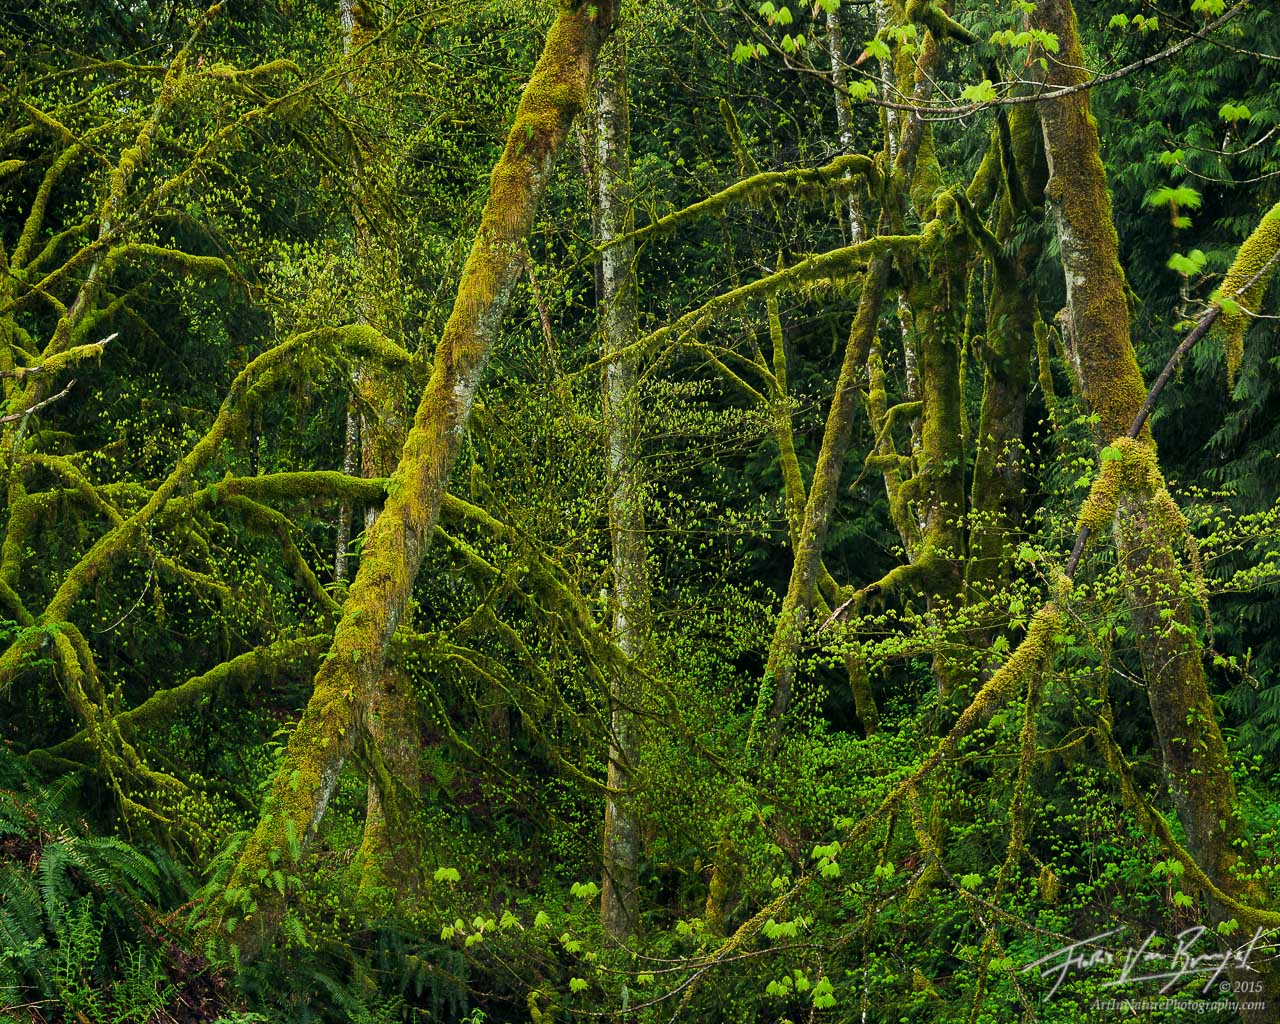 Spring Leaves and Mossy Trees, Snoqualmie National Forest, Washington, photo